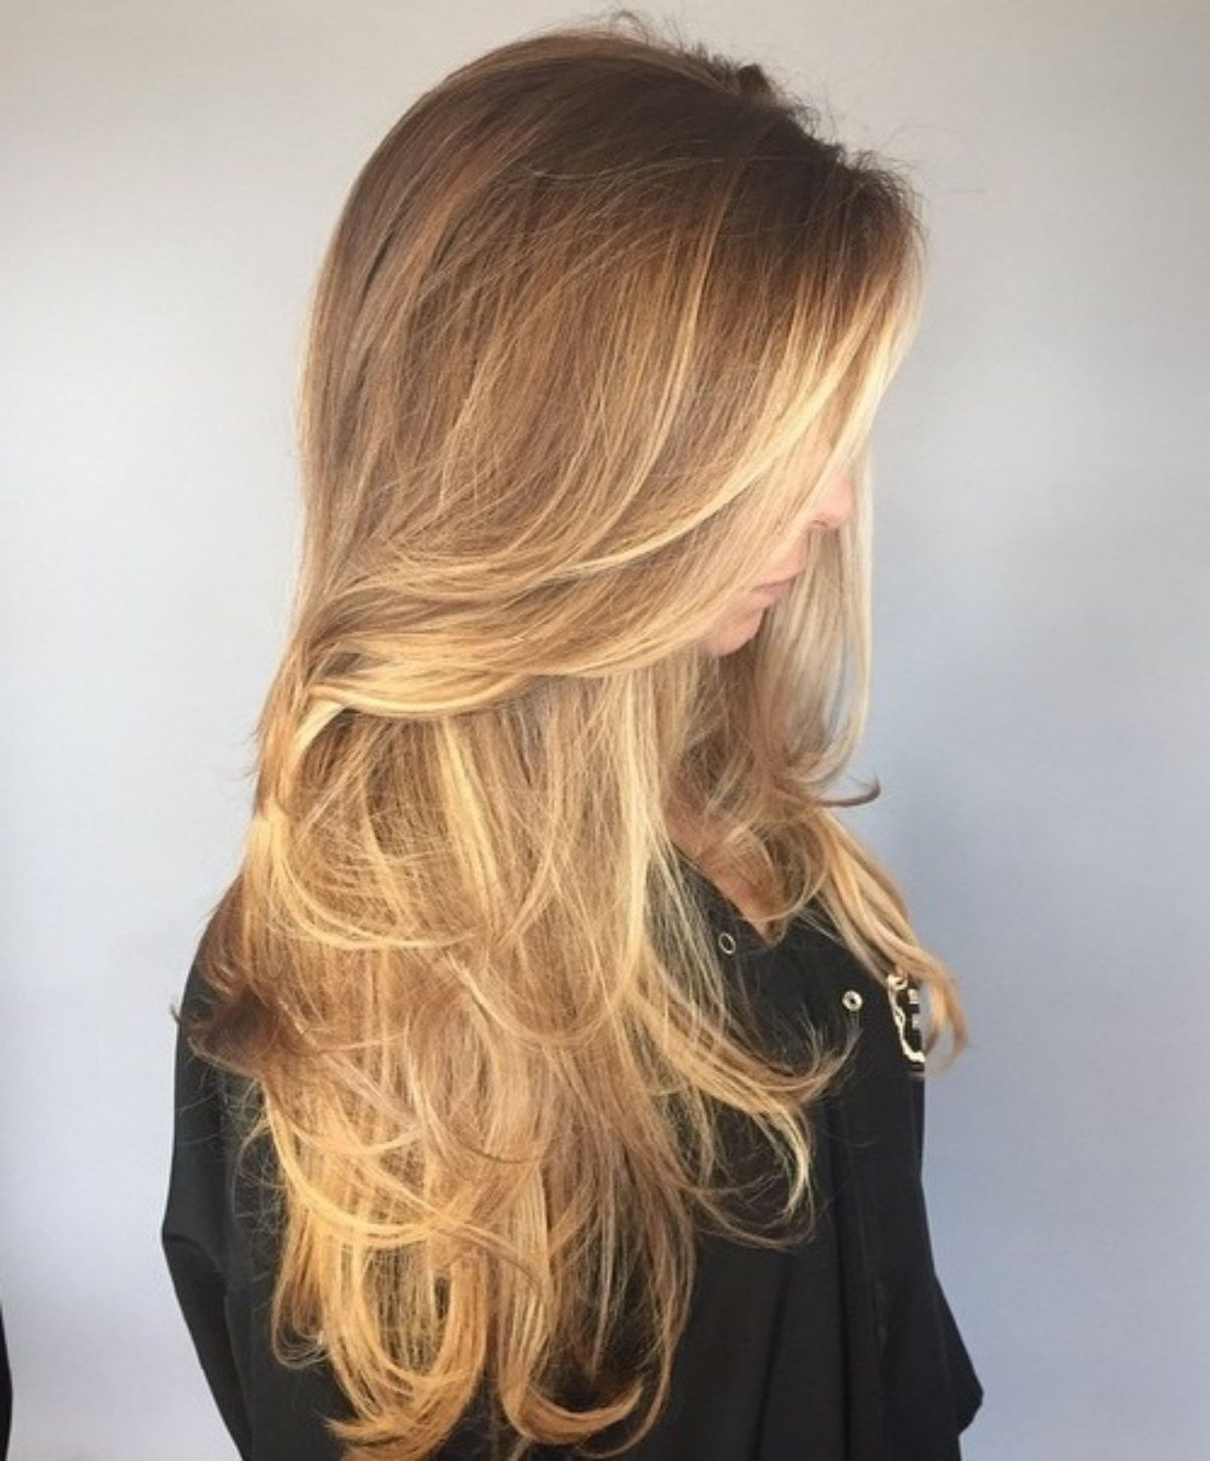 80 Cute Layered Hairstyles And Cuts For Long Hair In 2019 (Gallery 15 of 20)